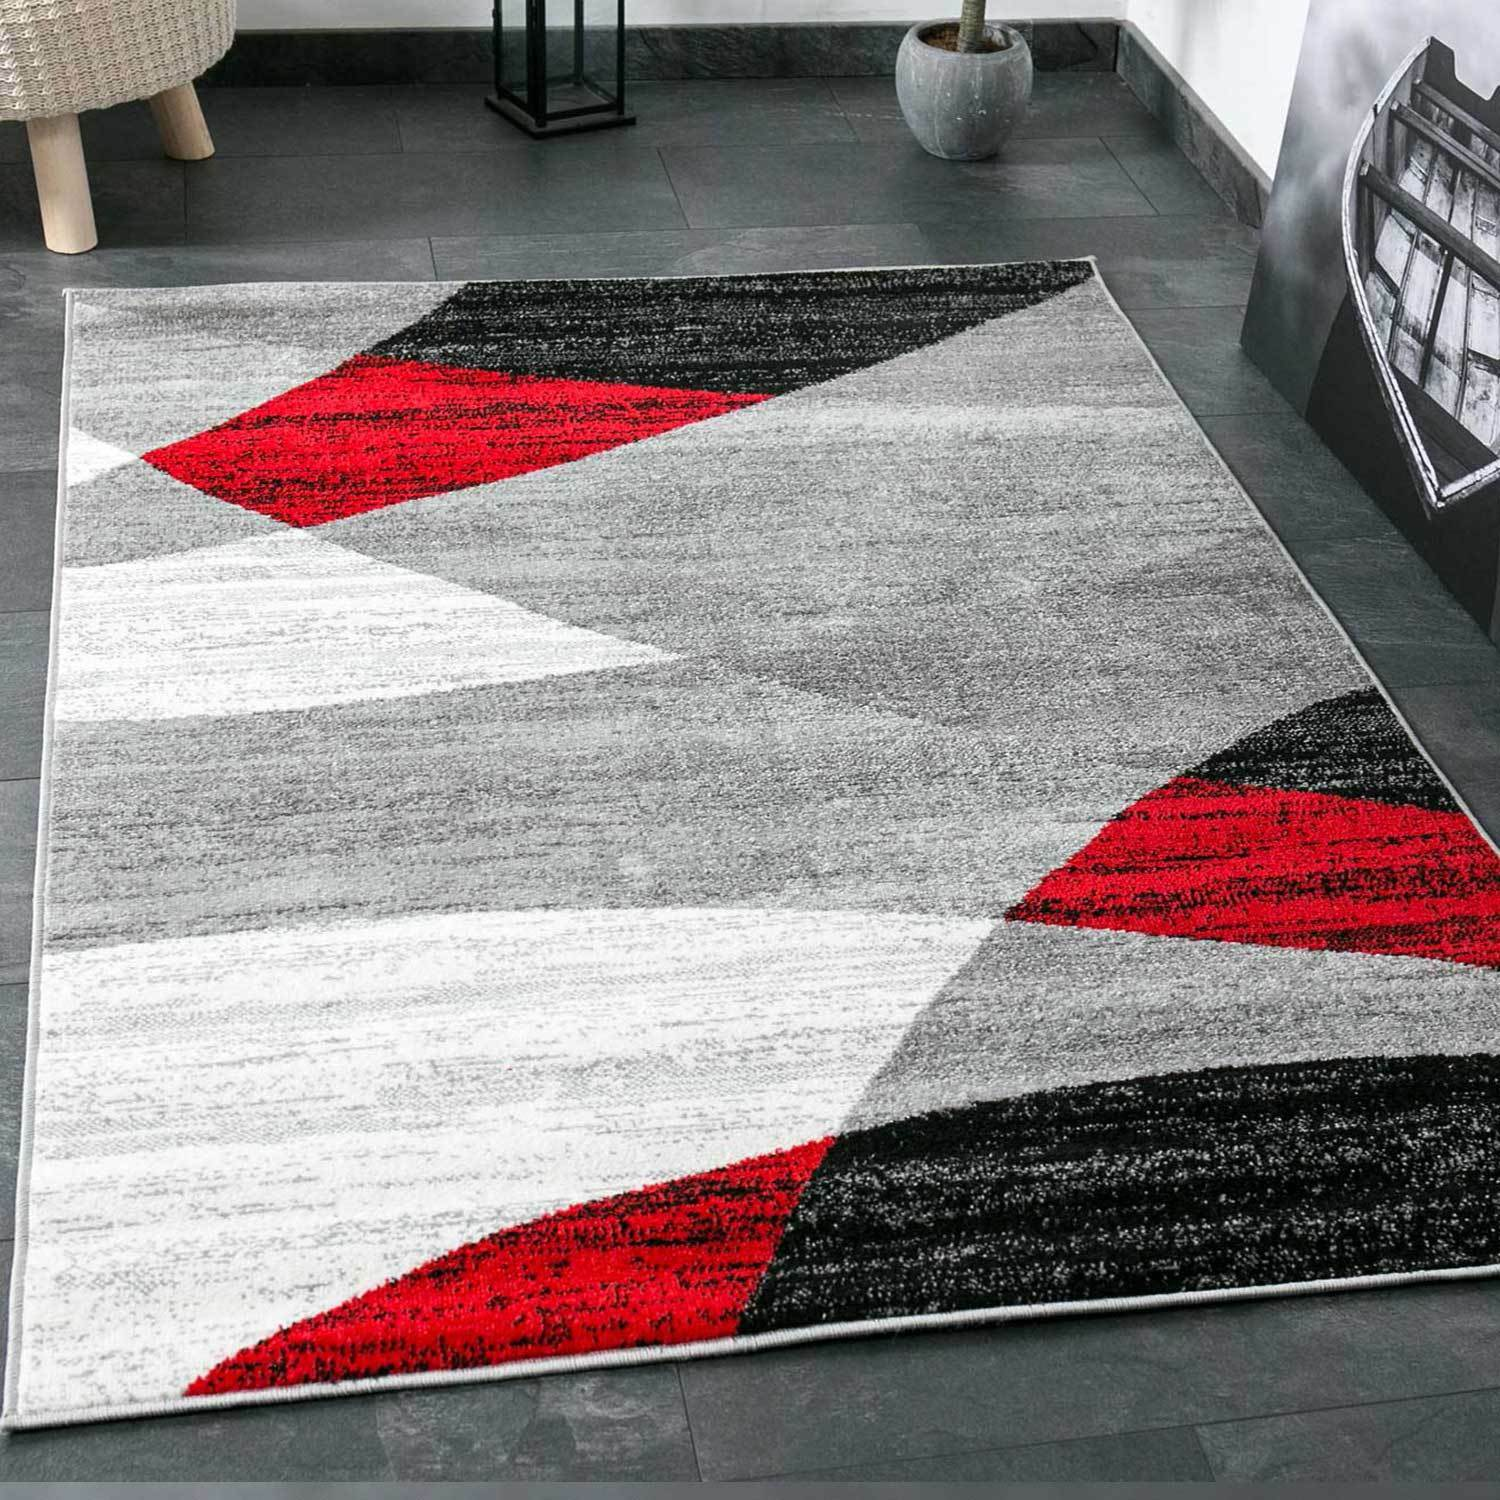 design salon tapis g om trique motif mouchet gris blanc noir rouge eur 26 46 picclick fr. Black Bedroom Furniture Sets. Home Design Ideas